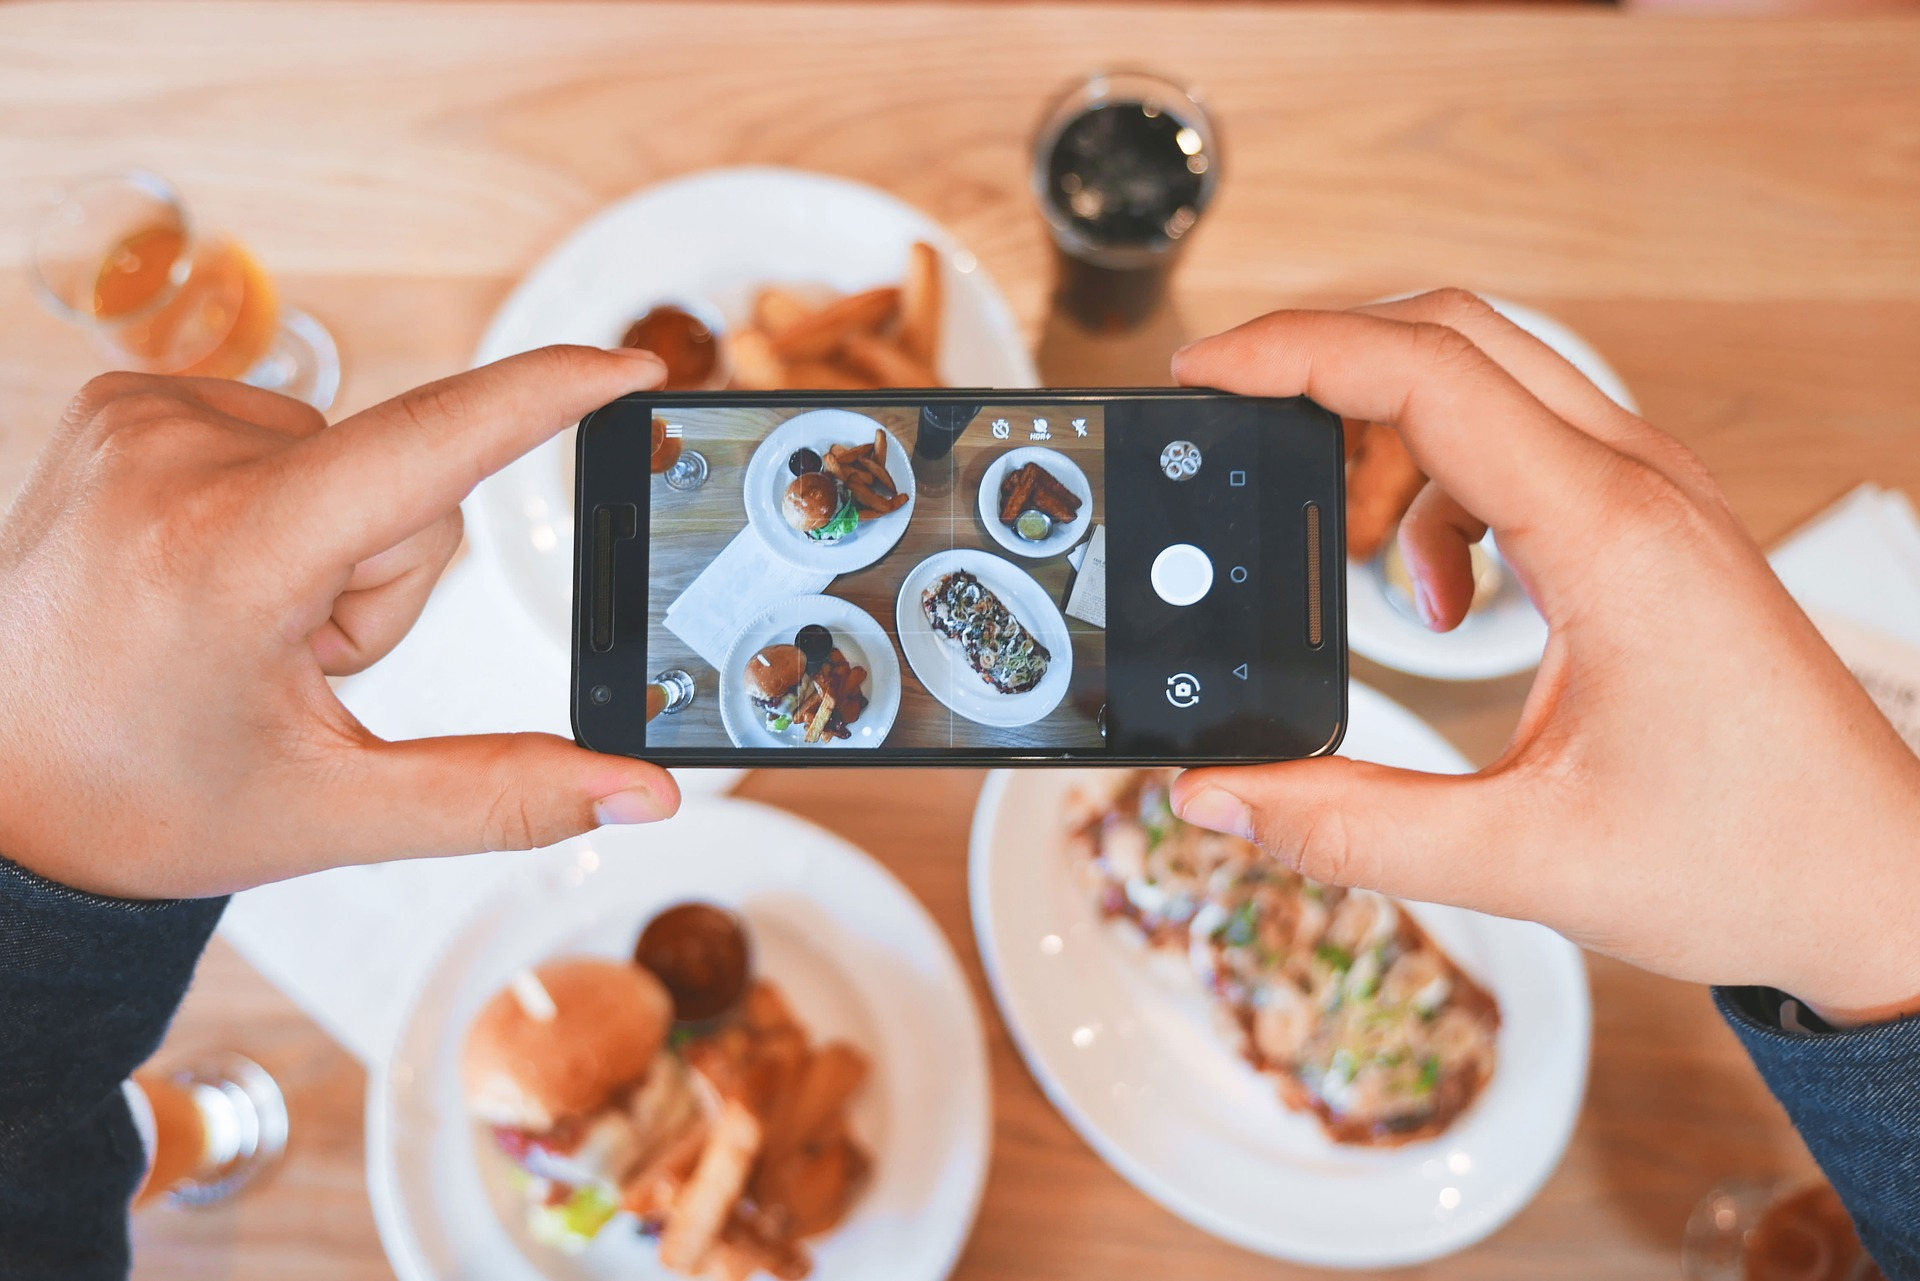 Exposure to Instagram influencers can make kids overeat